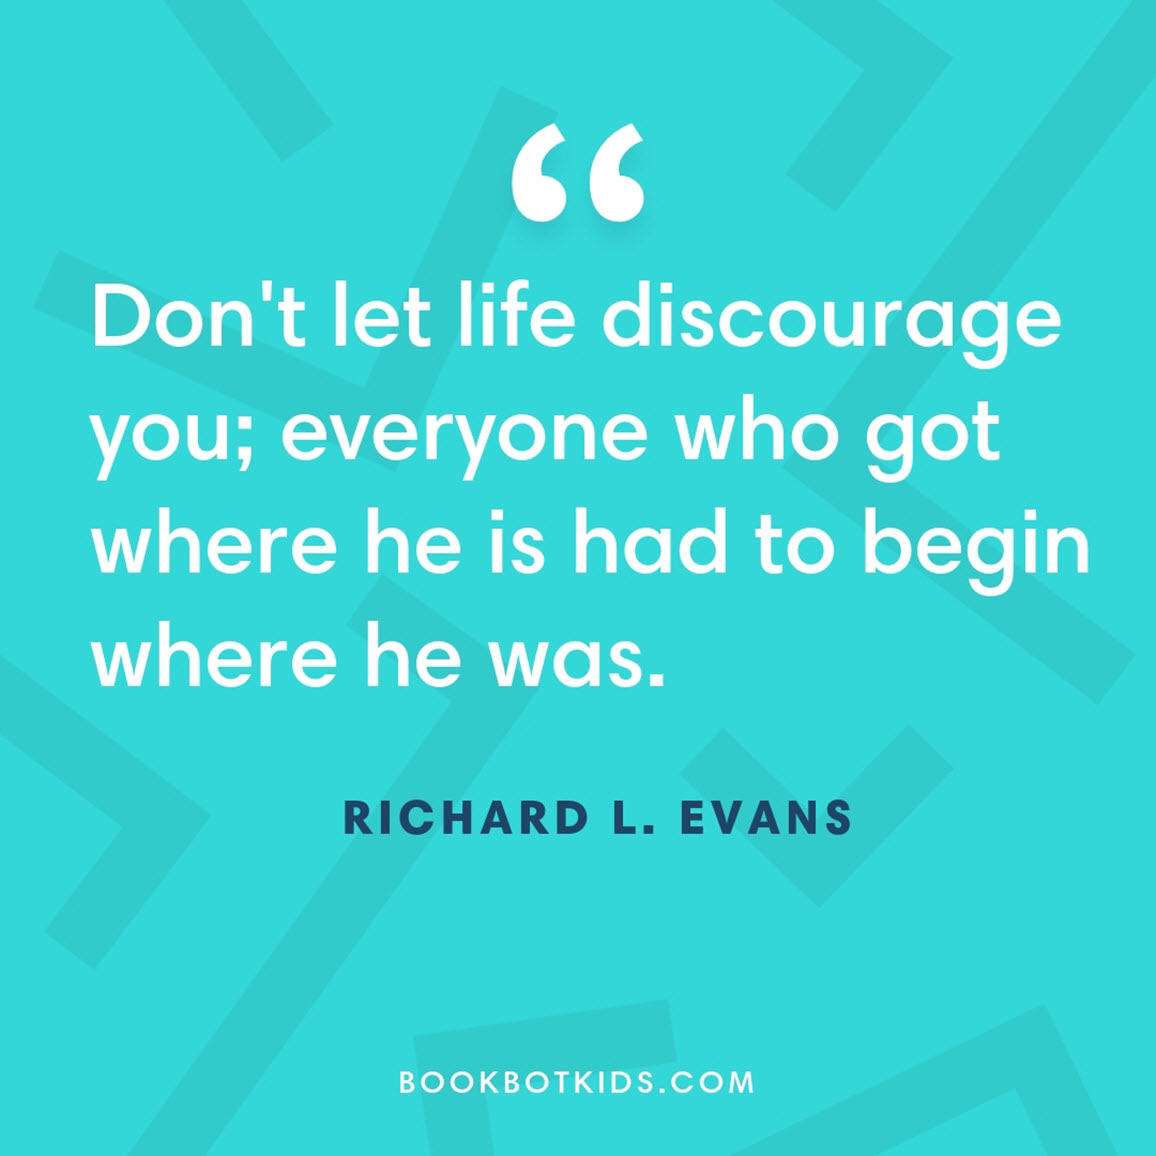 Don't let life discourage you; everyone who got where he is had to begin where he was. – Richard L. Evans